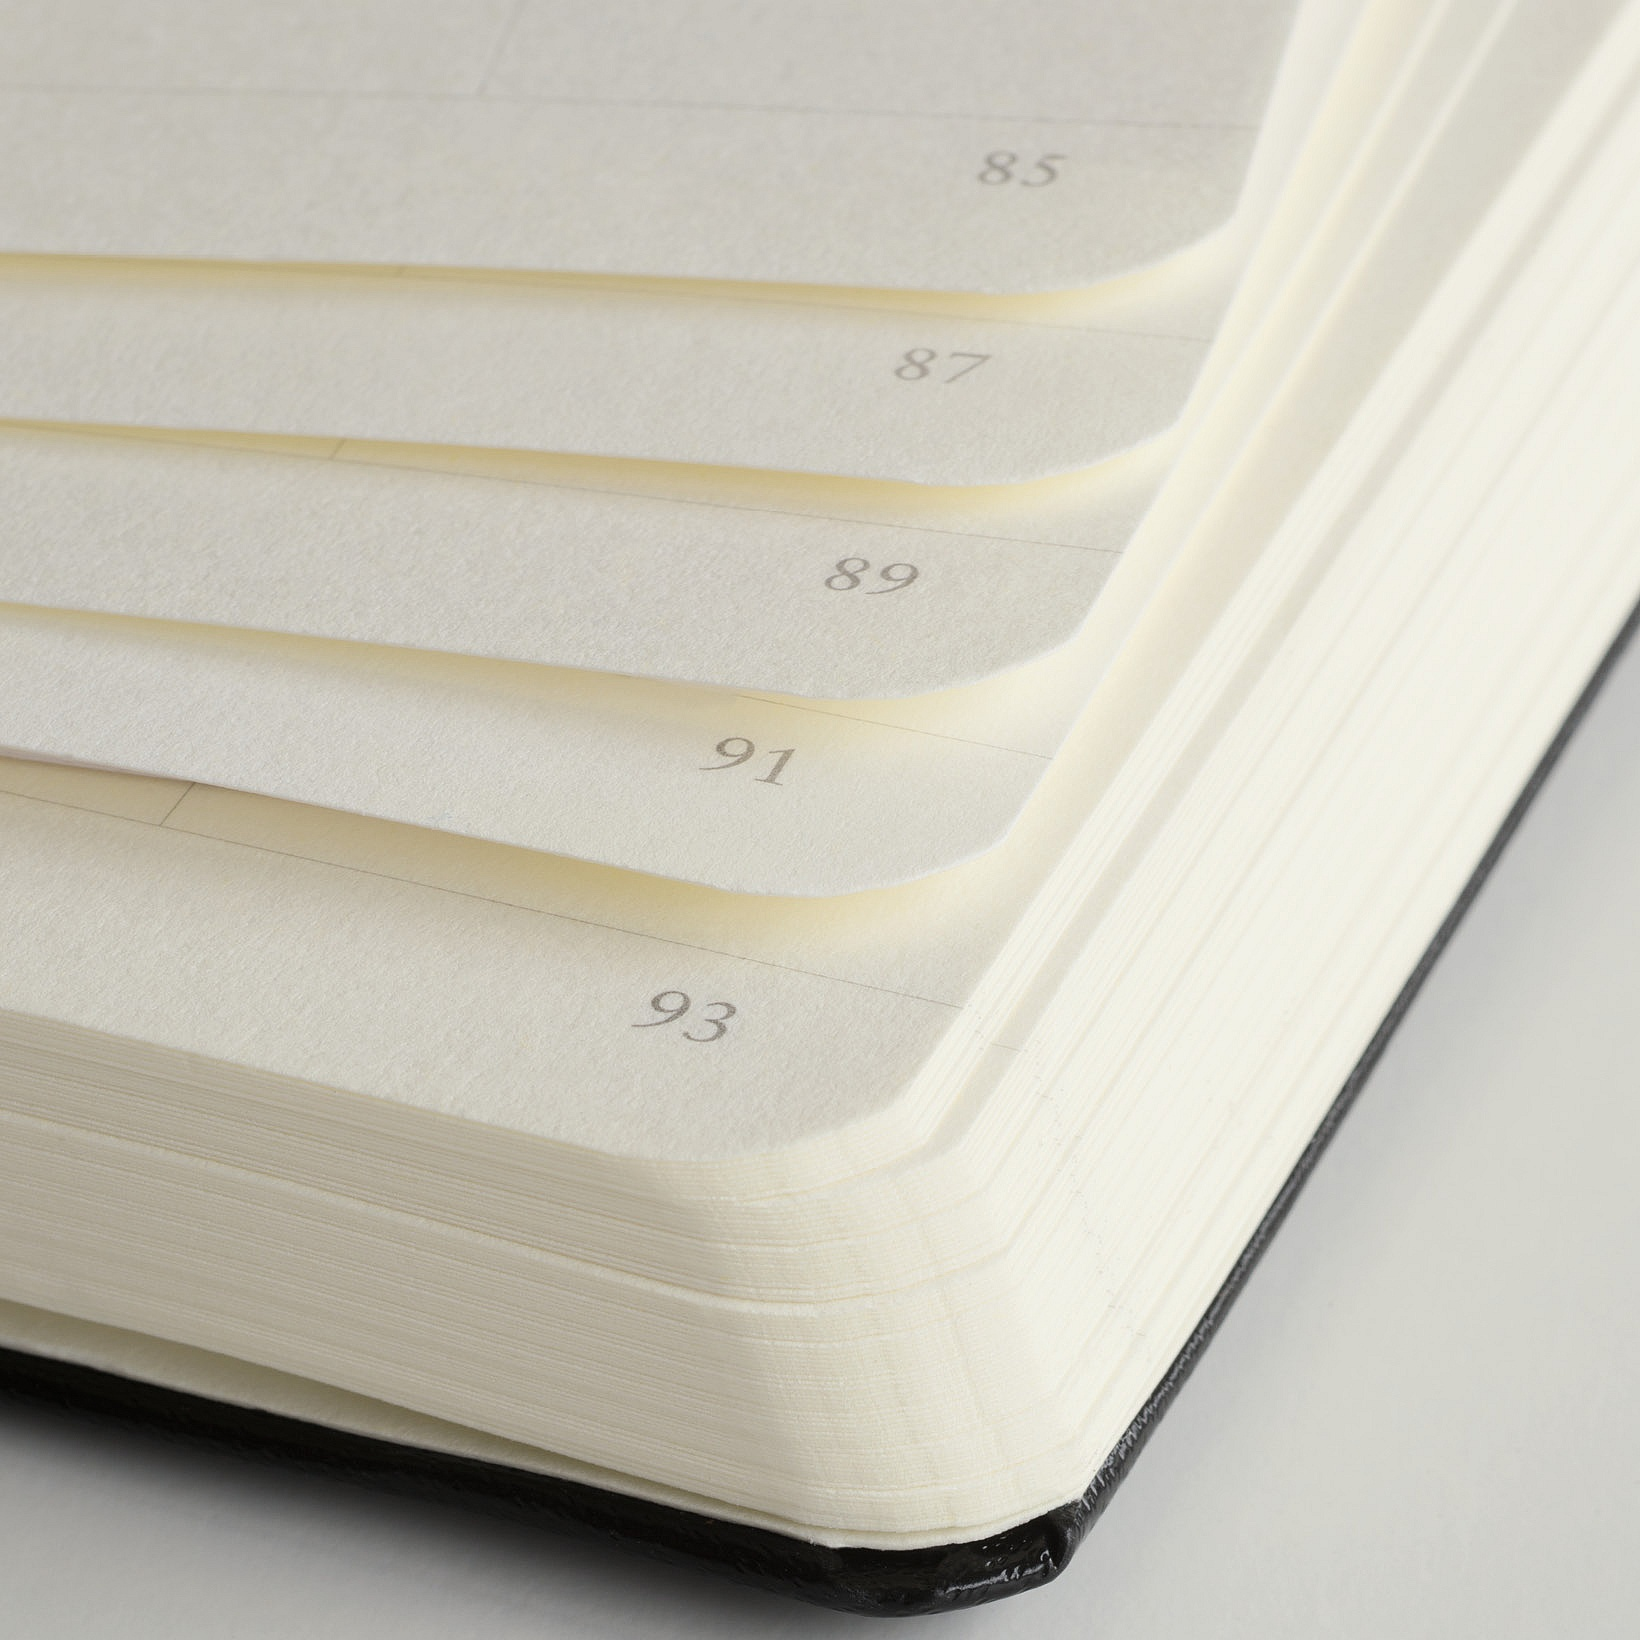 ruled or lined numbered pages